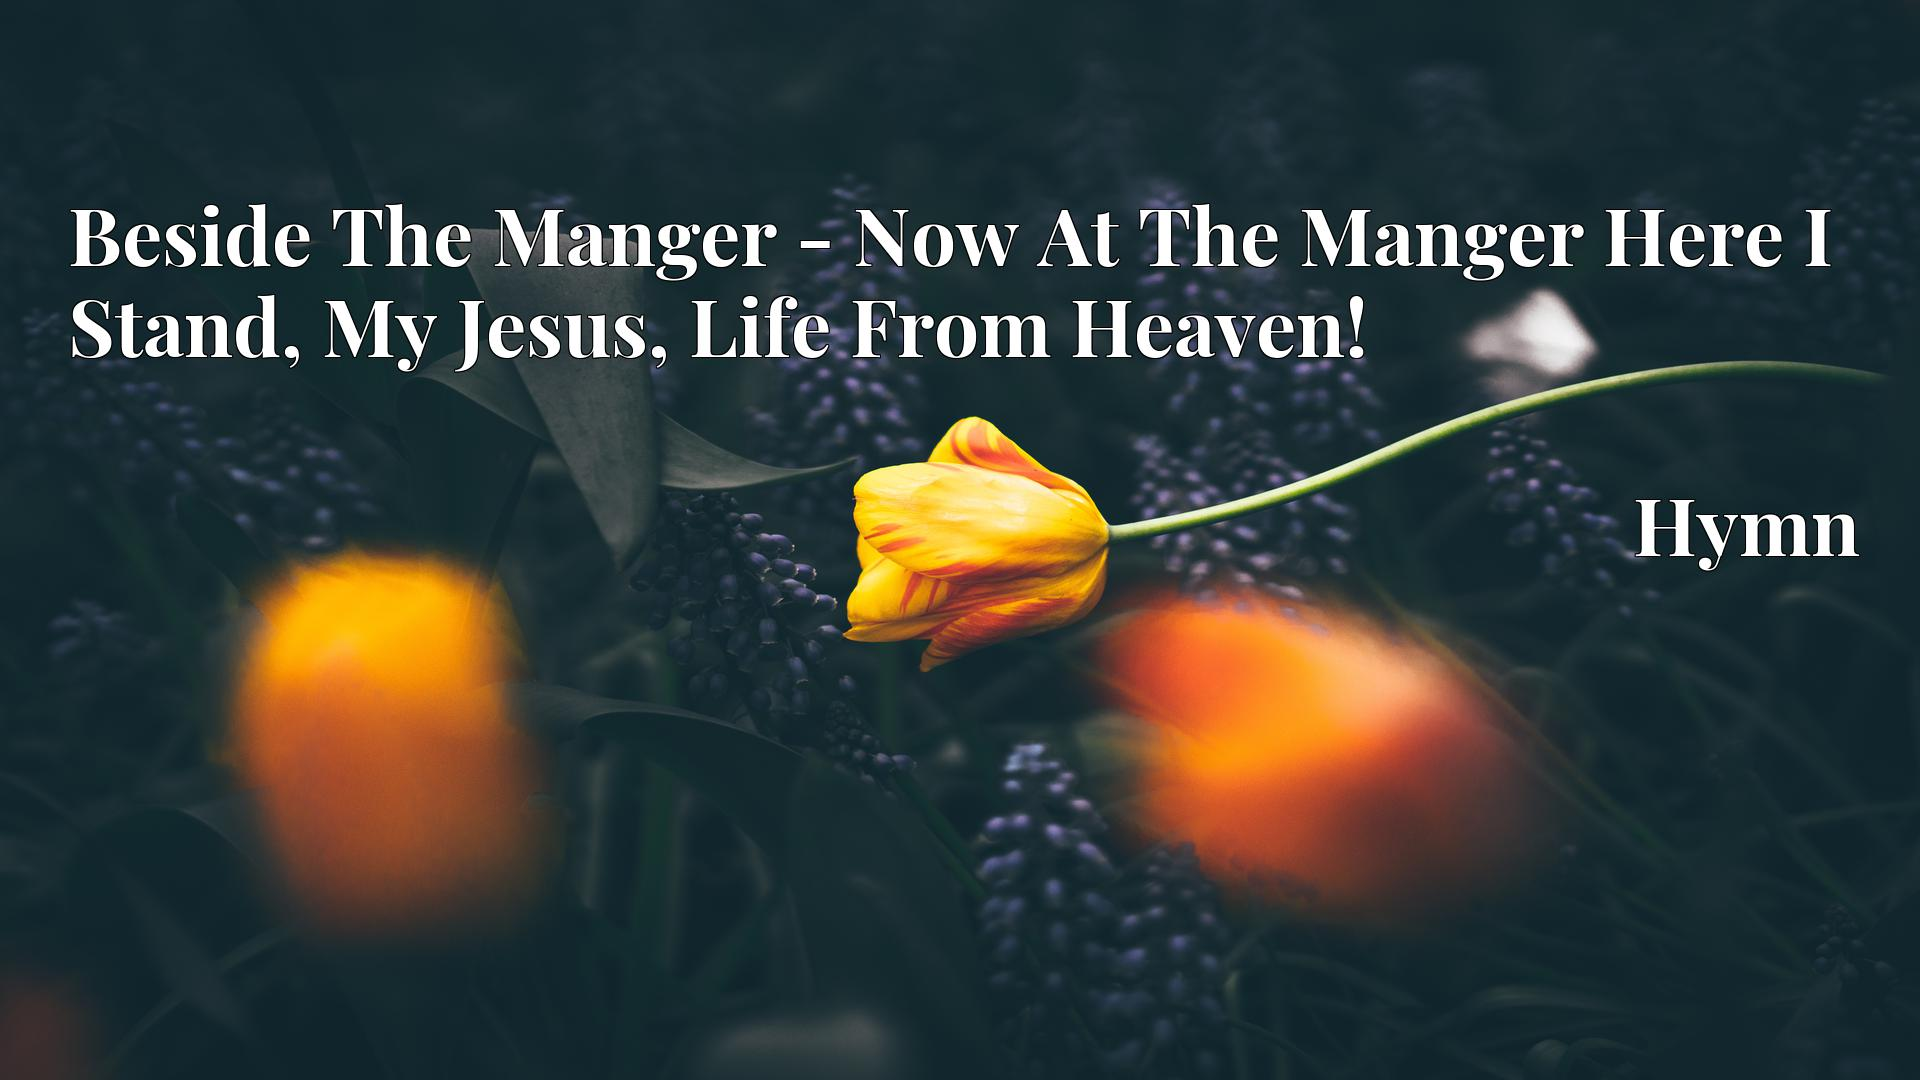 Beside The Manger - Now At The Manger Here I Stand, My Jesus, Life From Heaven! - Hymn